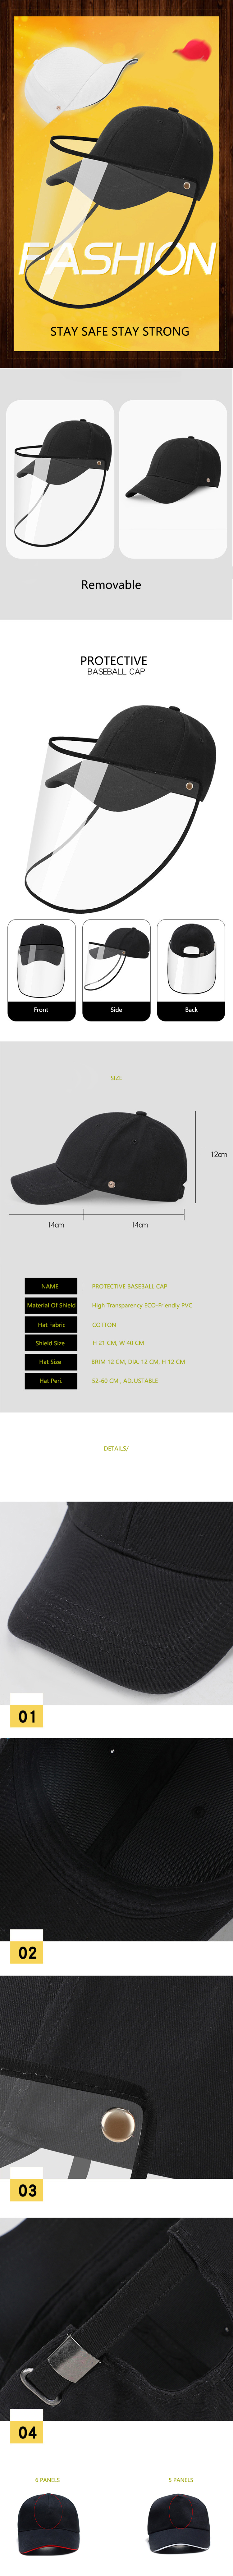 Direct splash protection protective cap anti-epidemic isolation anti-virus detachable baseball cap hat with face shield